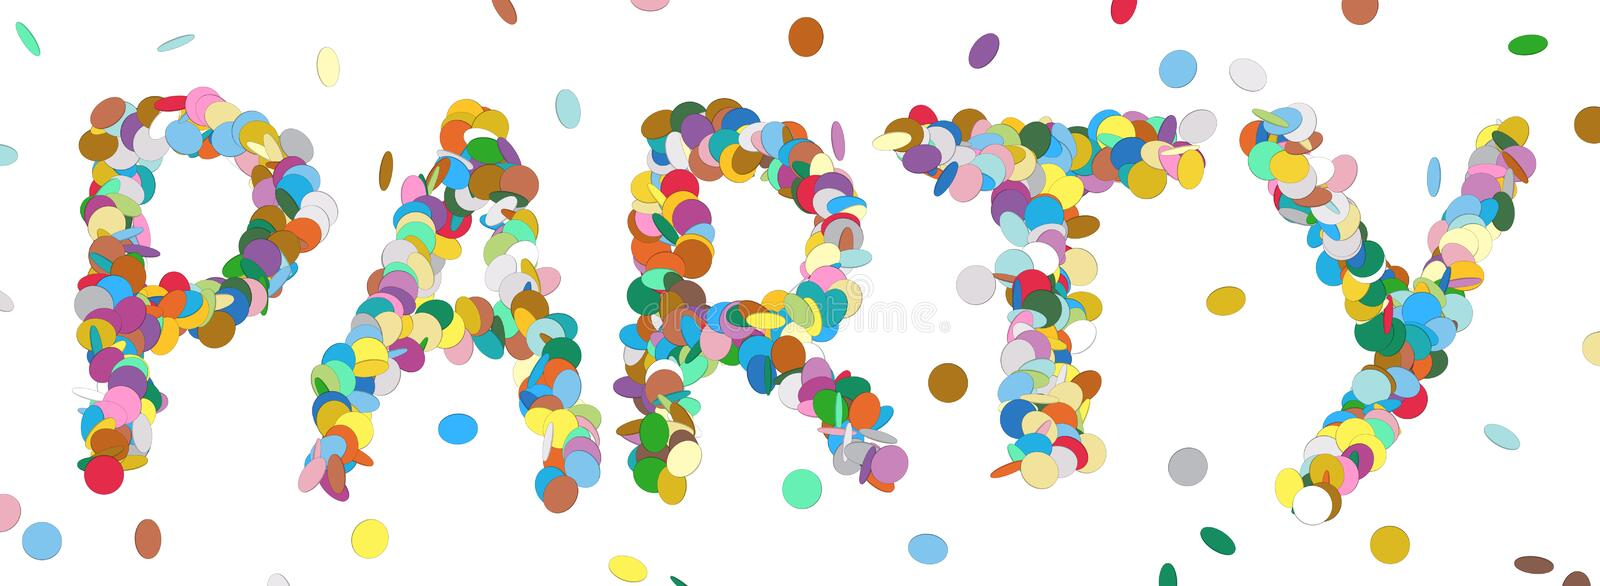 Abstract Confetti Word - PARTY Letter - Colorful Panorama Vector royalty free illustration